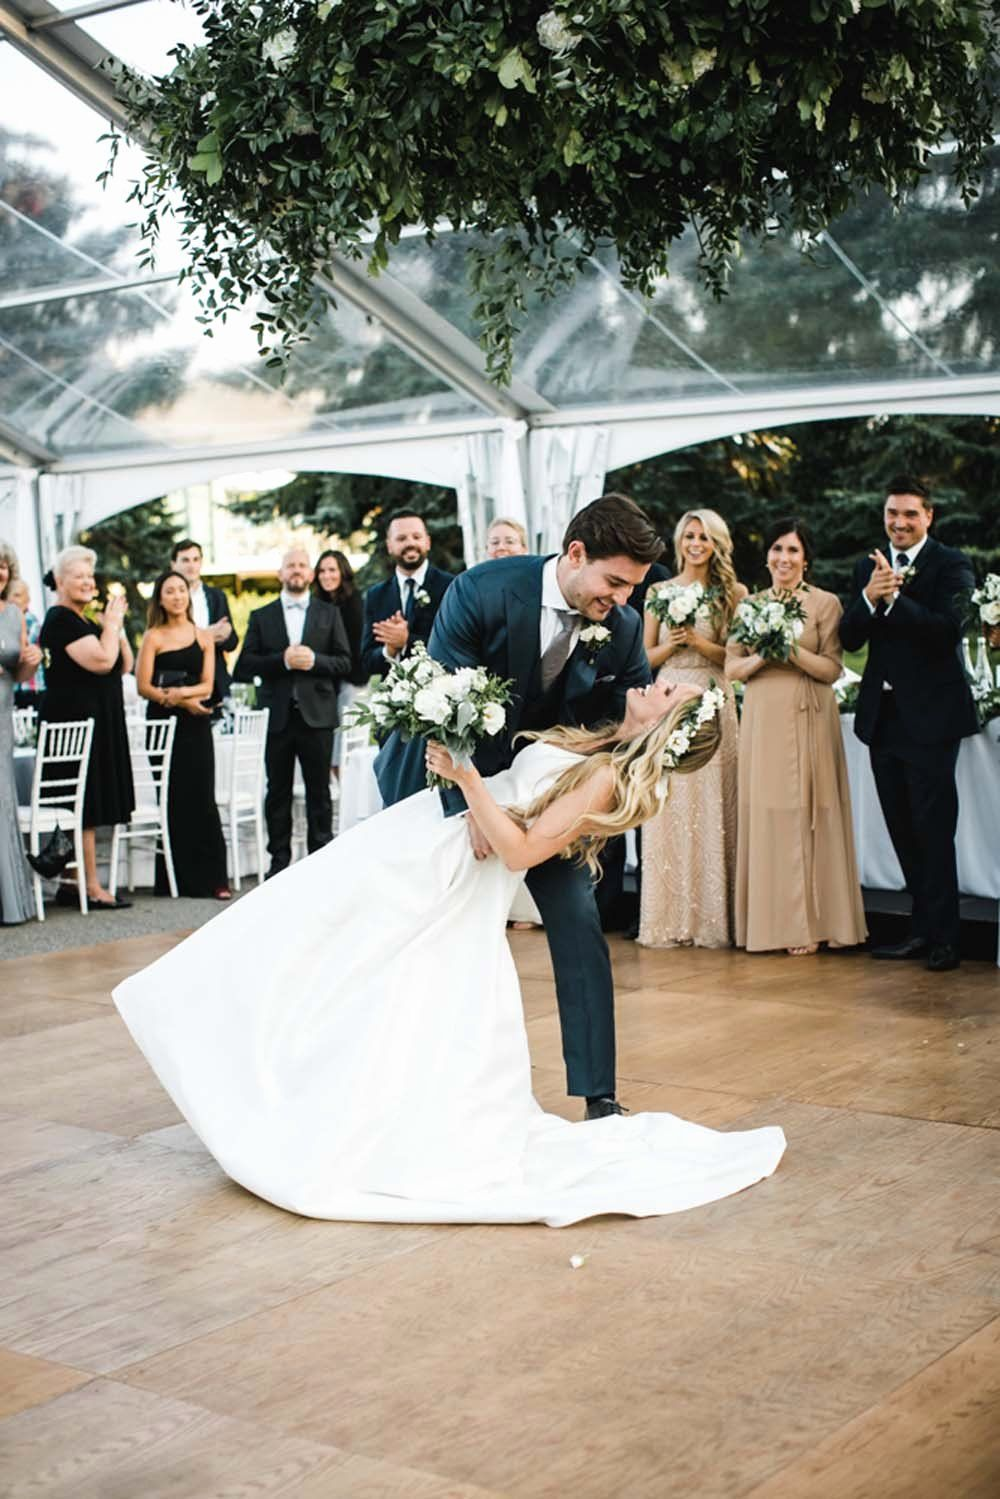 Black and White Wedding Reception Ideas Inspirational the